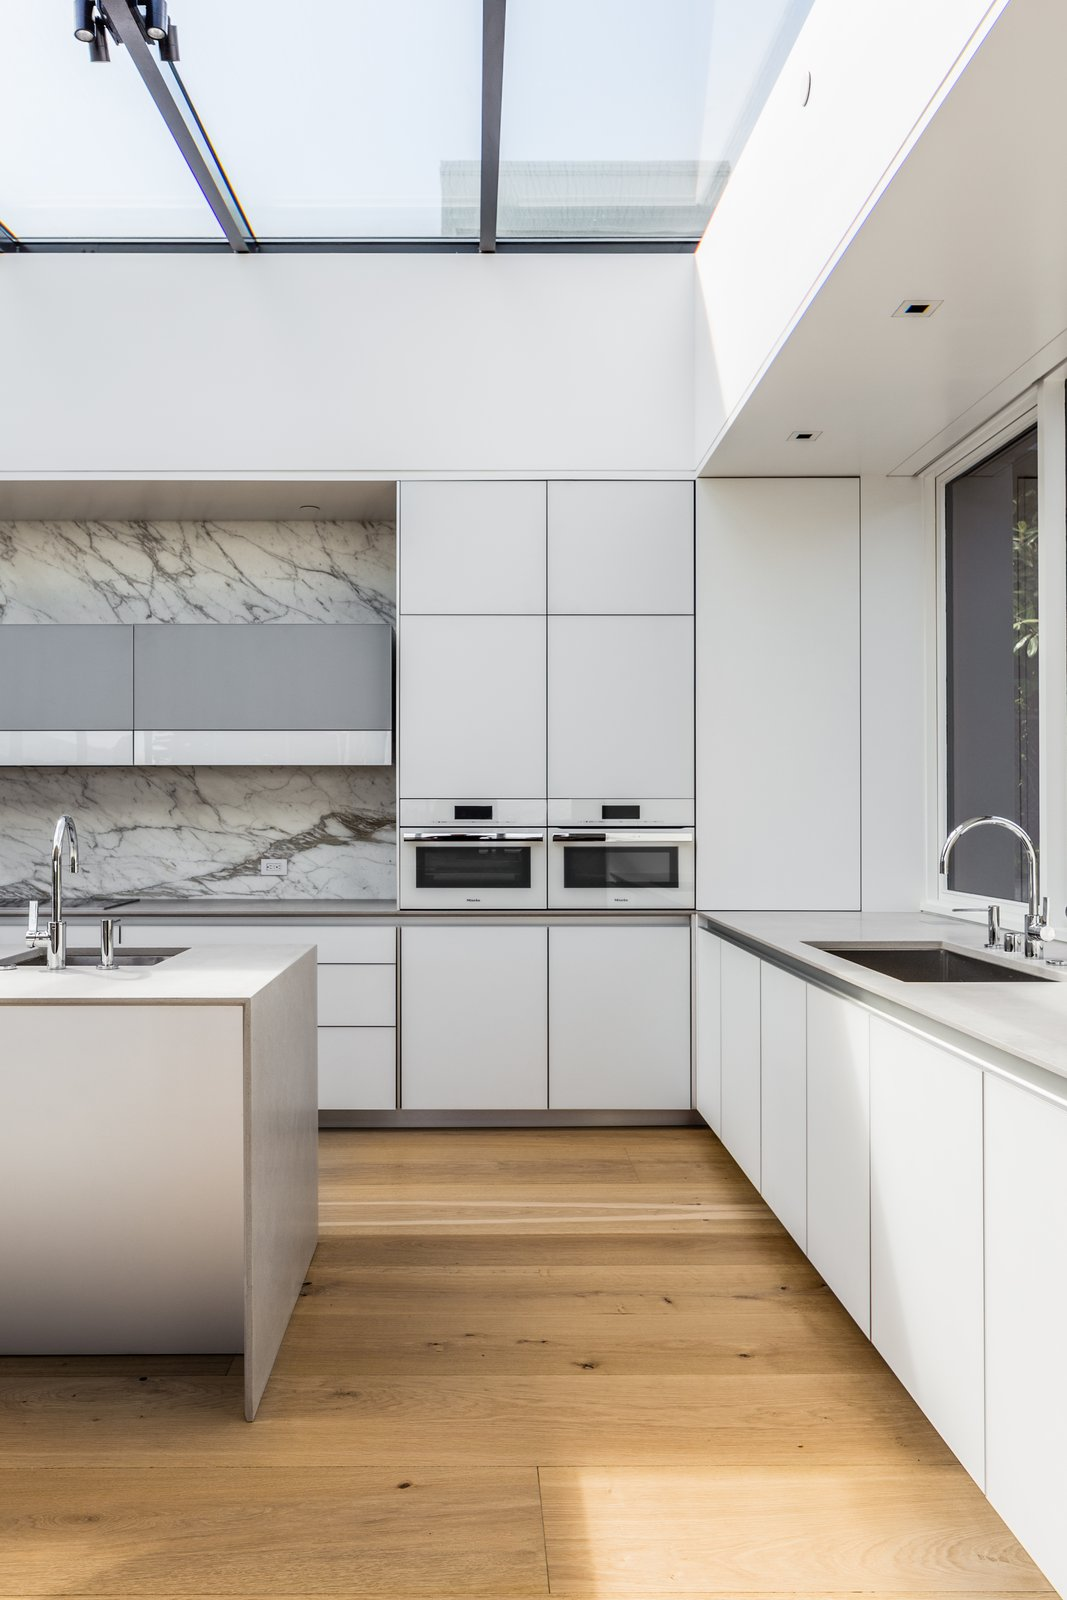 Tagged: Kitchen, Concrete Counter, White Cabinet, Light Hardwood Floor, Marble Backsplashe, Ceiling Lighting, Recessed Lighting, Wall Oven, Microwave, and Undermount Sink.  Spruce by John Maniscalco Architecture